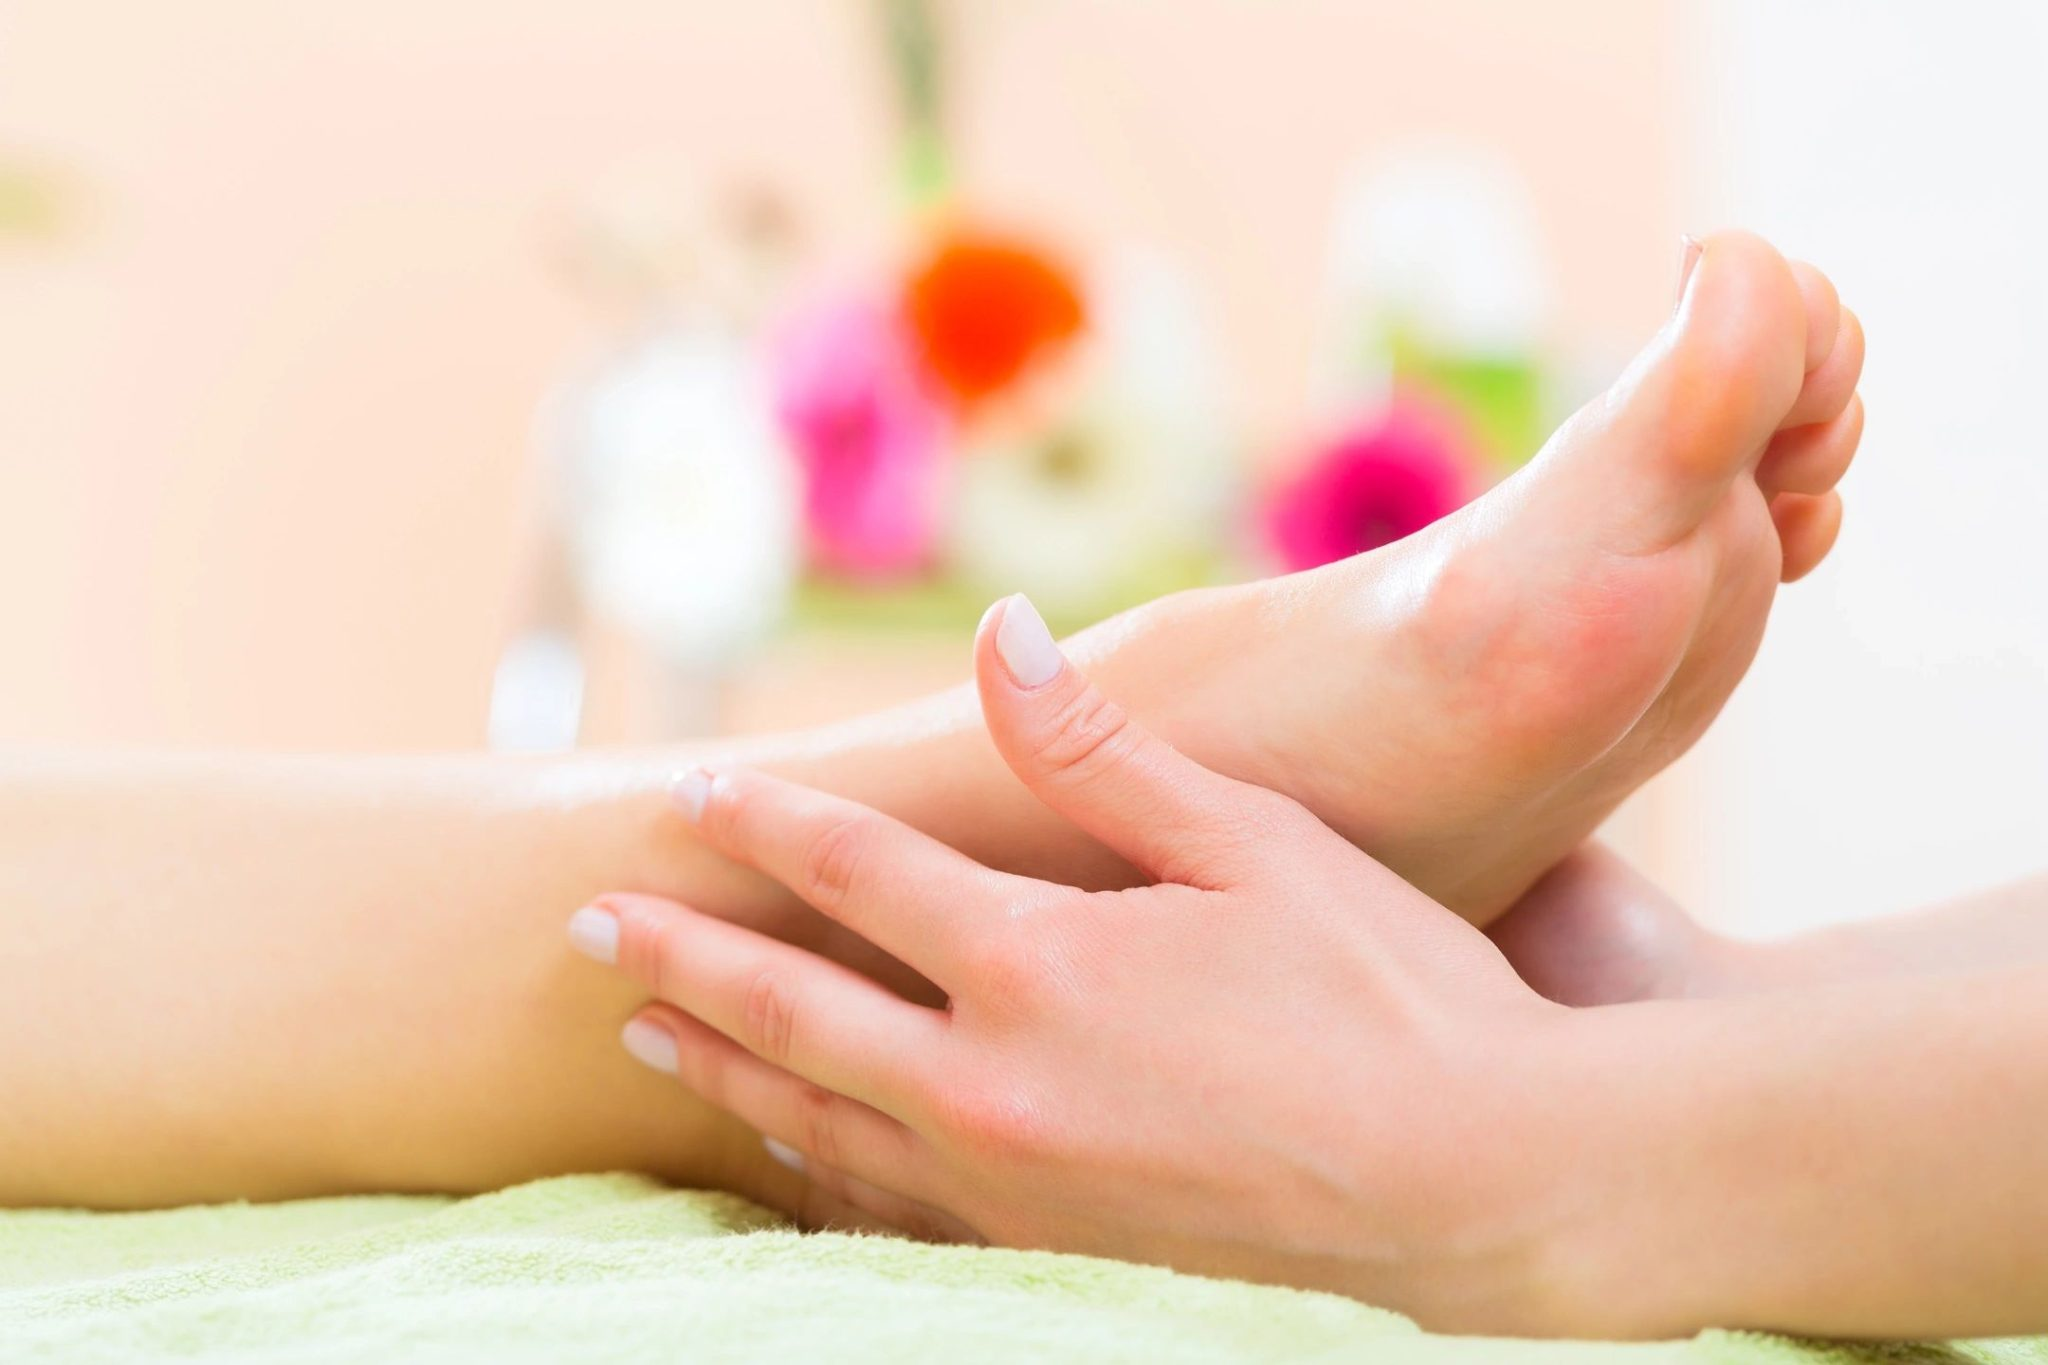 Reflexology is local's favorite